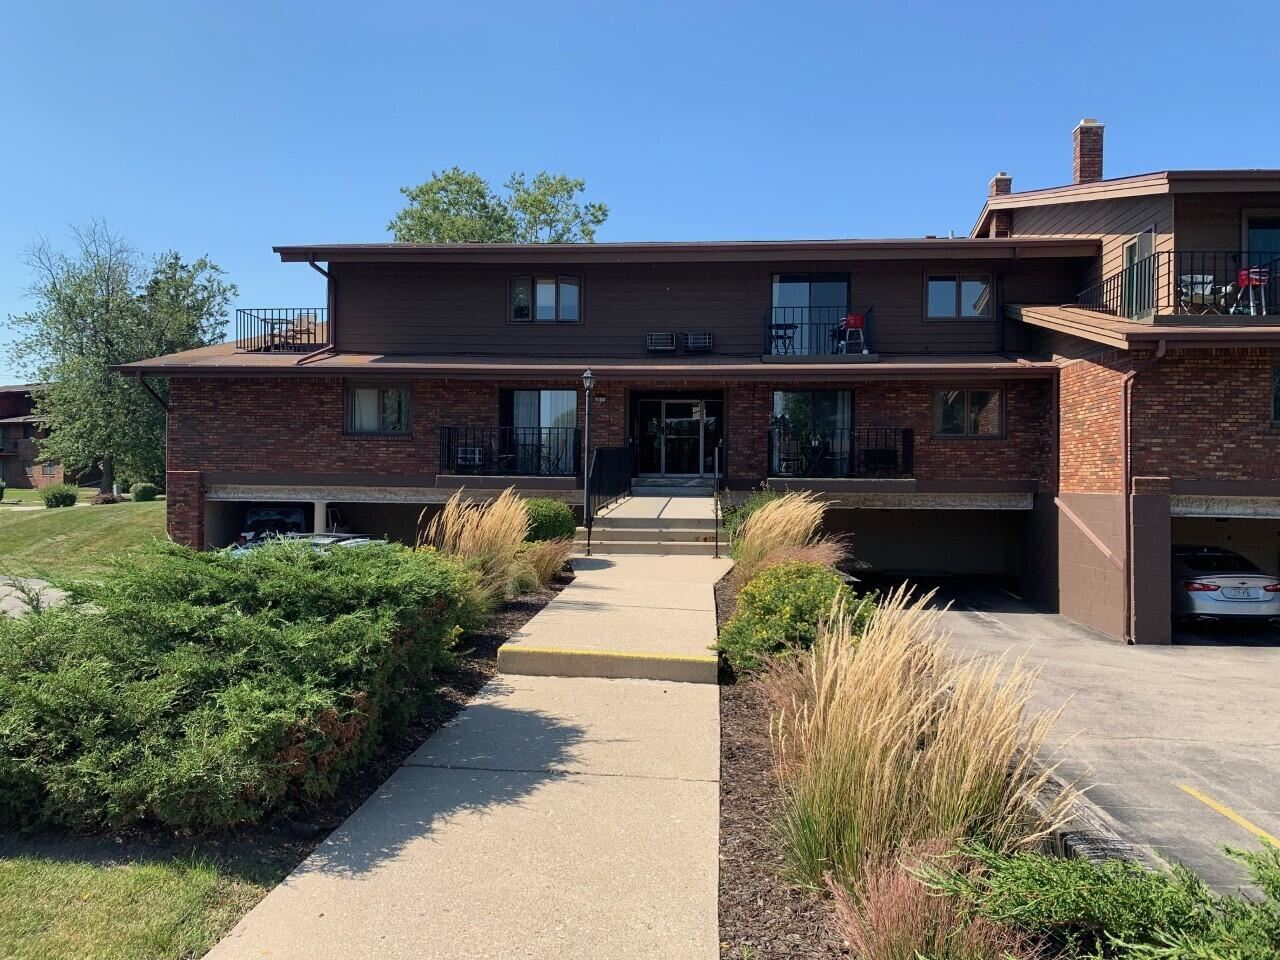 4035 S 84th St #1, Greenfield, WI 53228 - #: 1763900